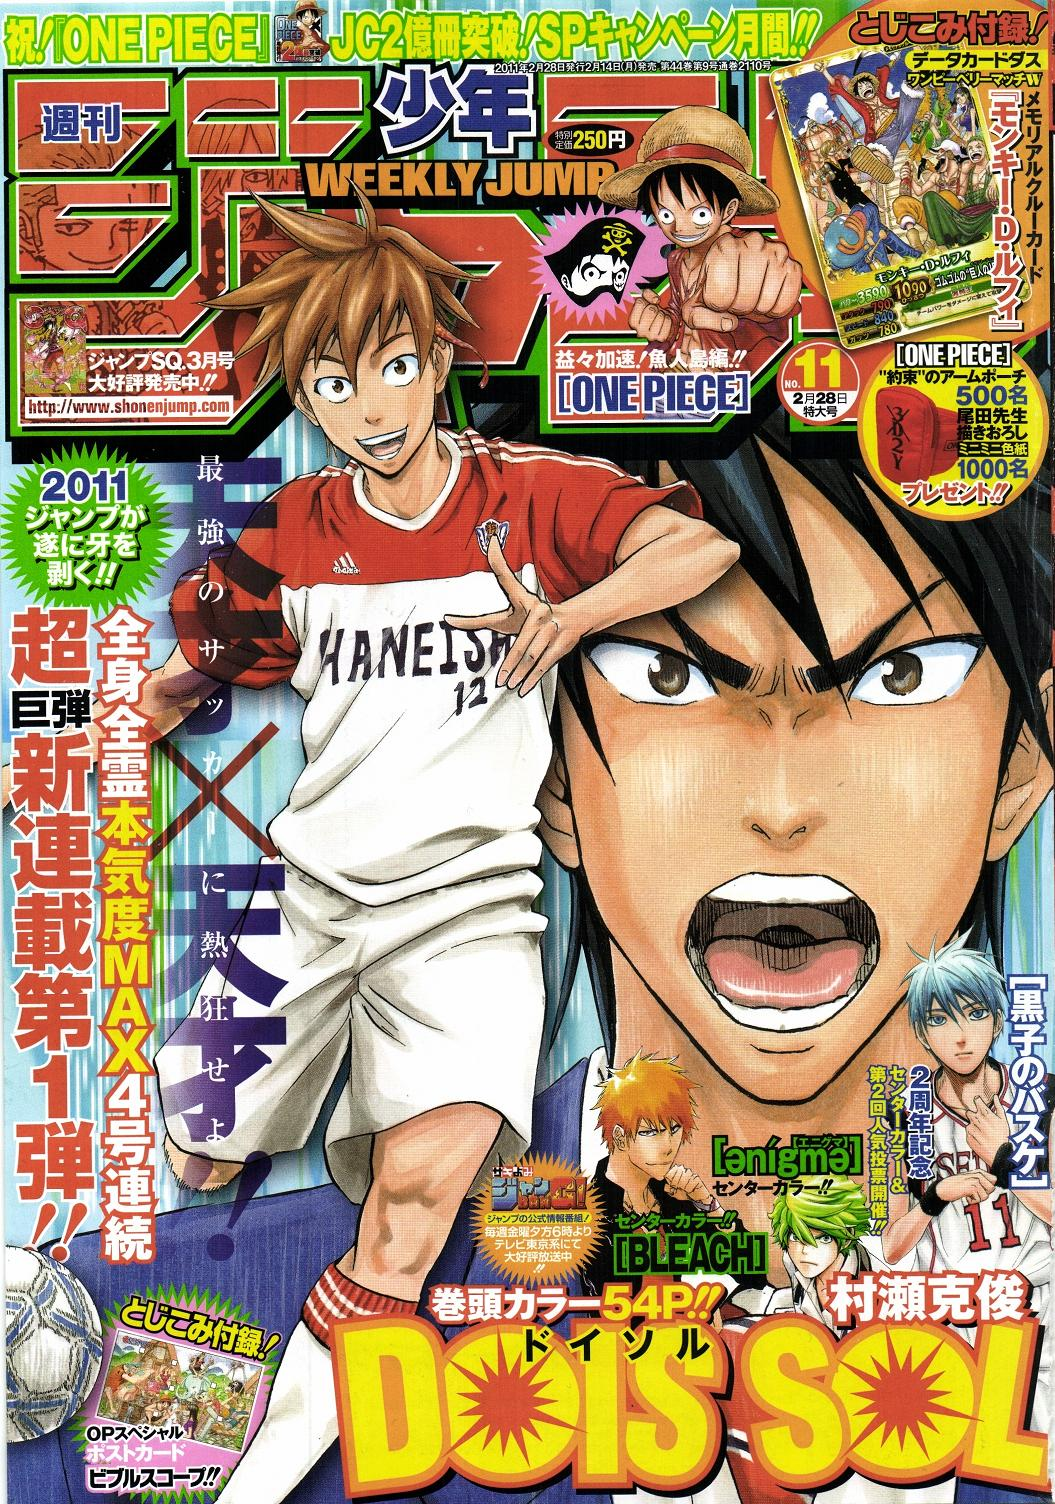 Photo of Weekly Shonen Jump ToC: Edição #11! [2011]